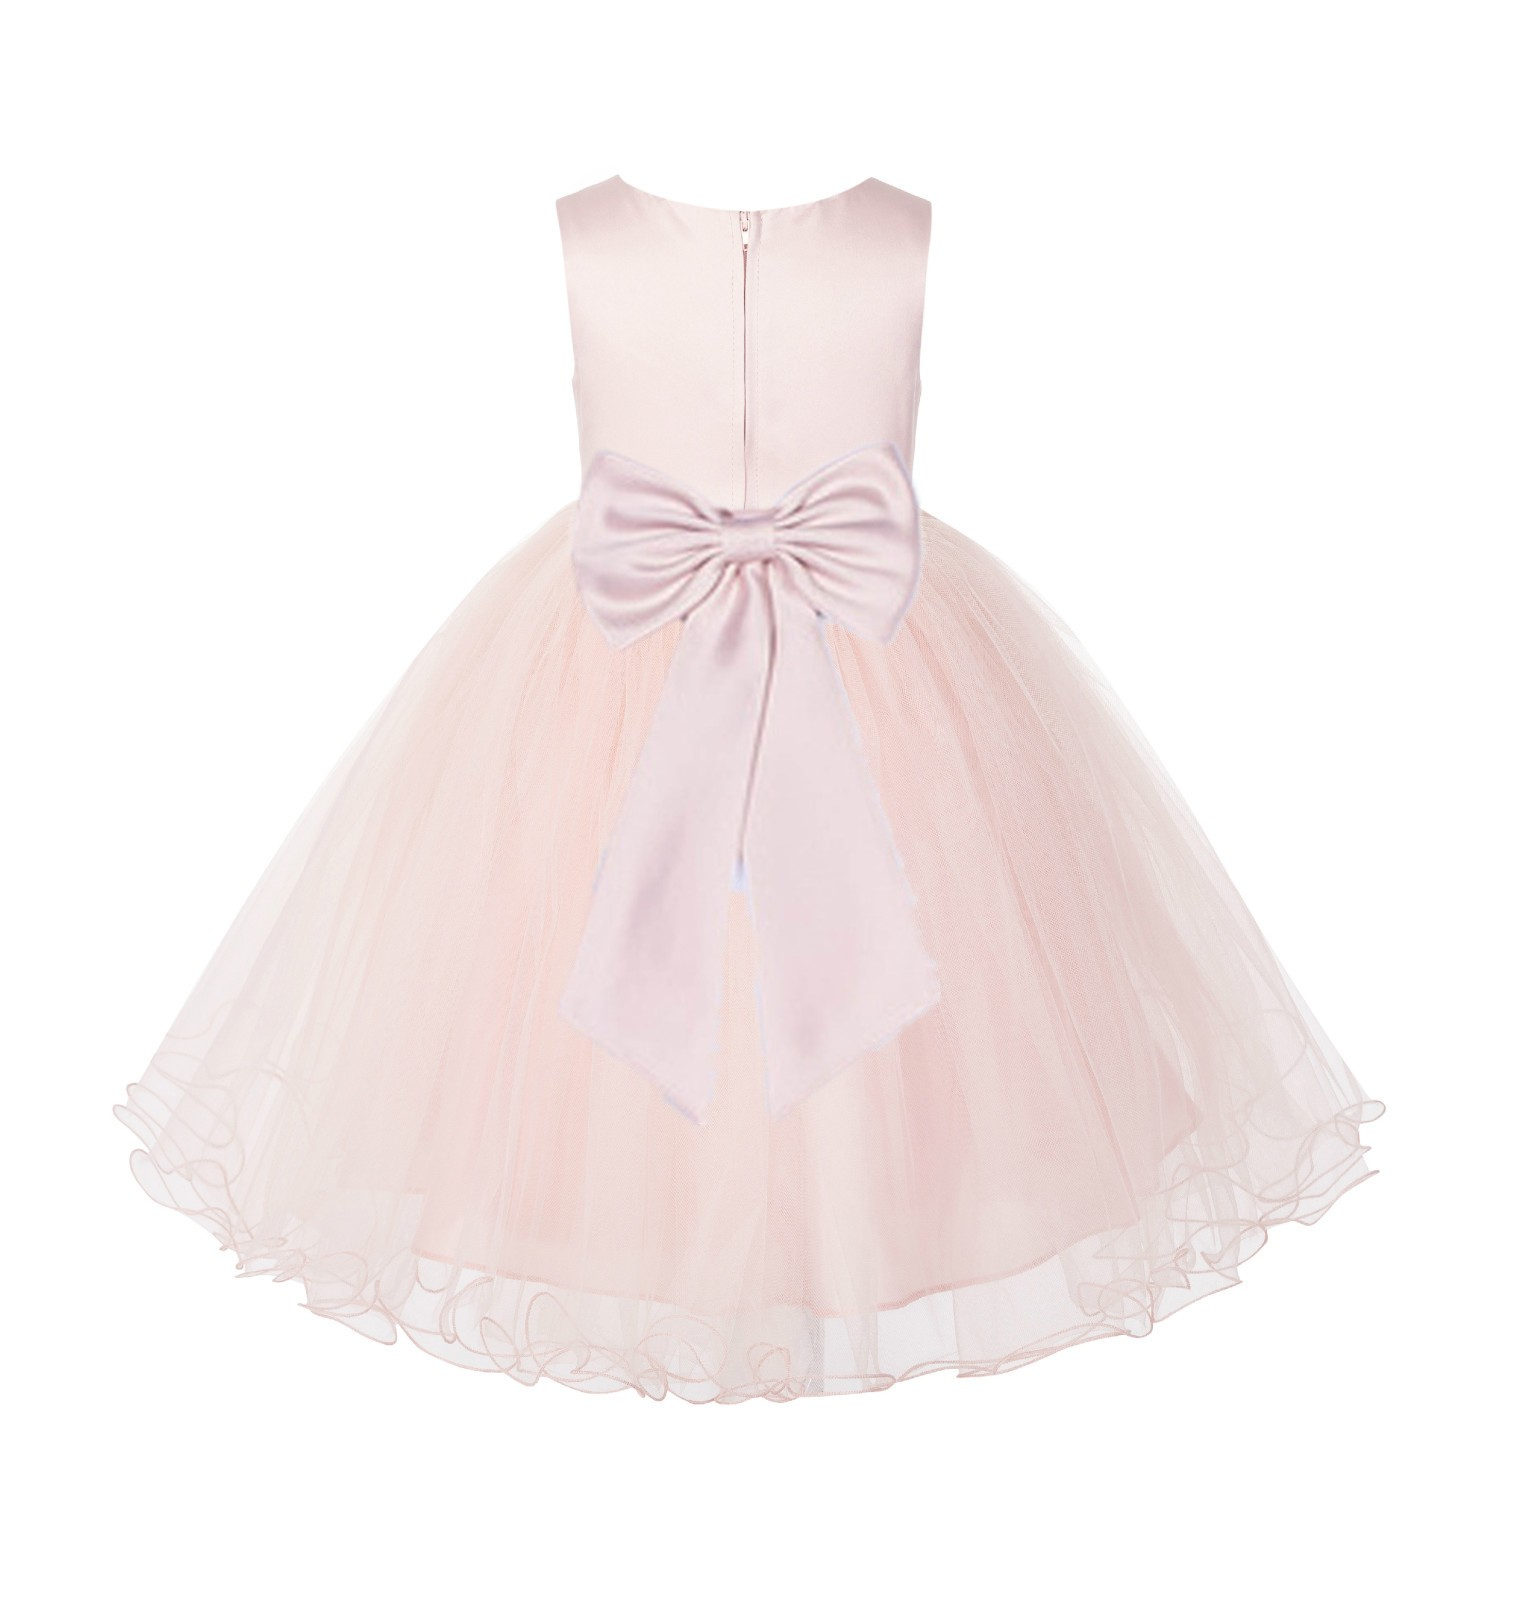 Blush PInk / Blush Tulle Rattail Edge Flower Girl Dress Wedding Bridesmaid 829T